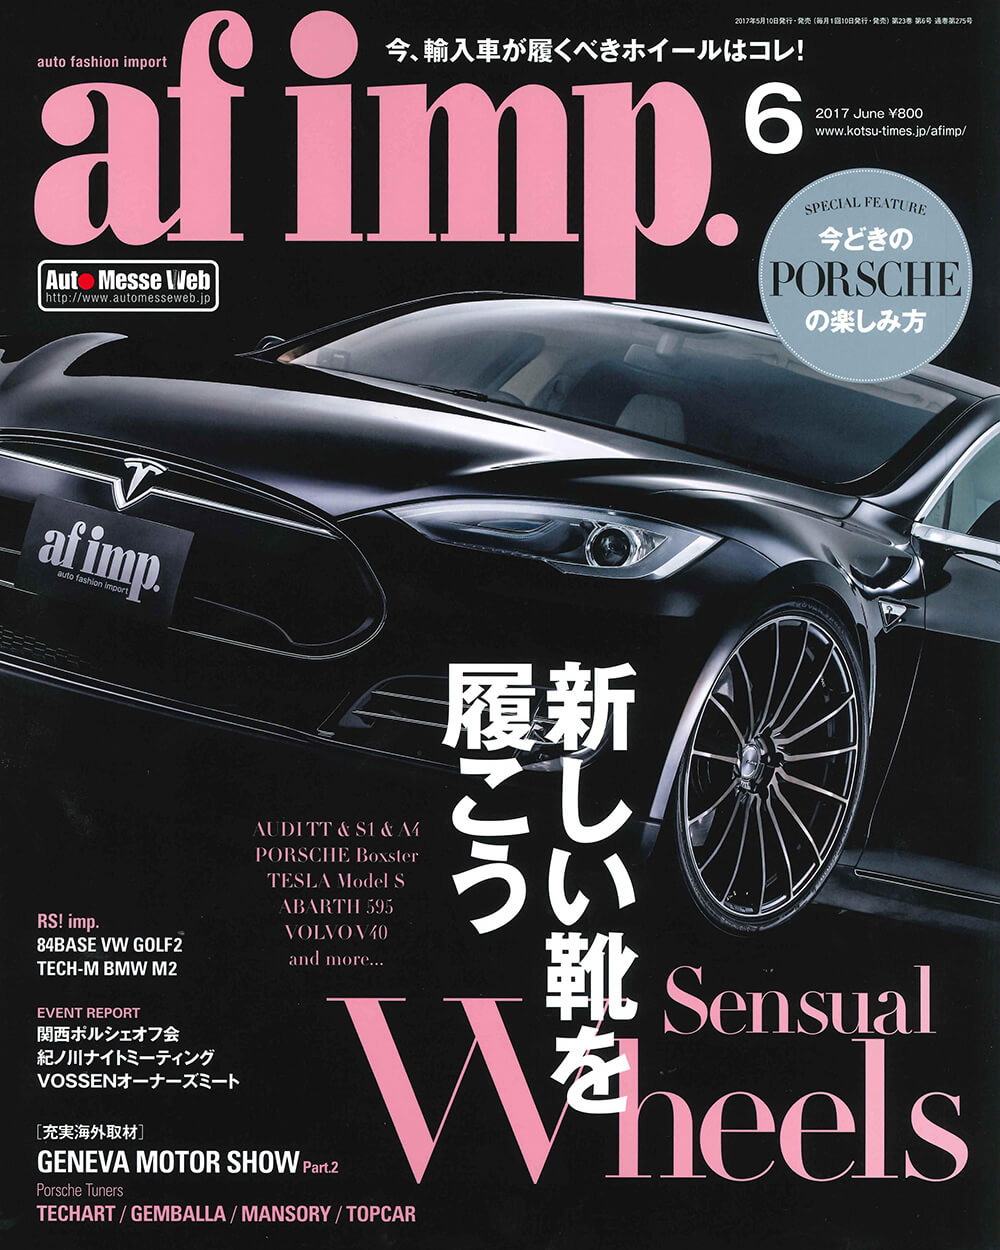 af imp Jun. issue